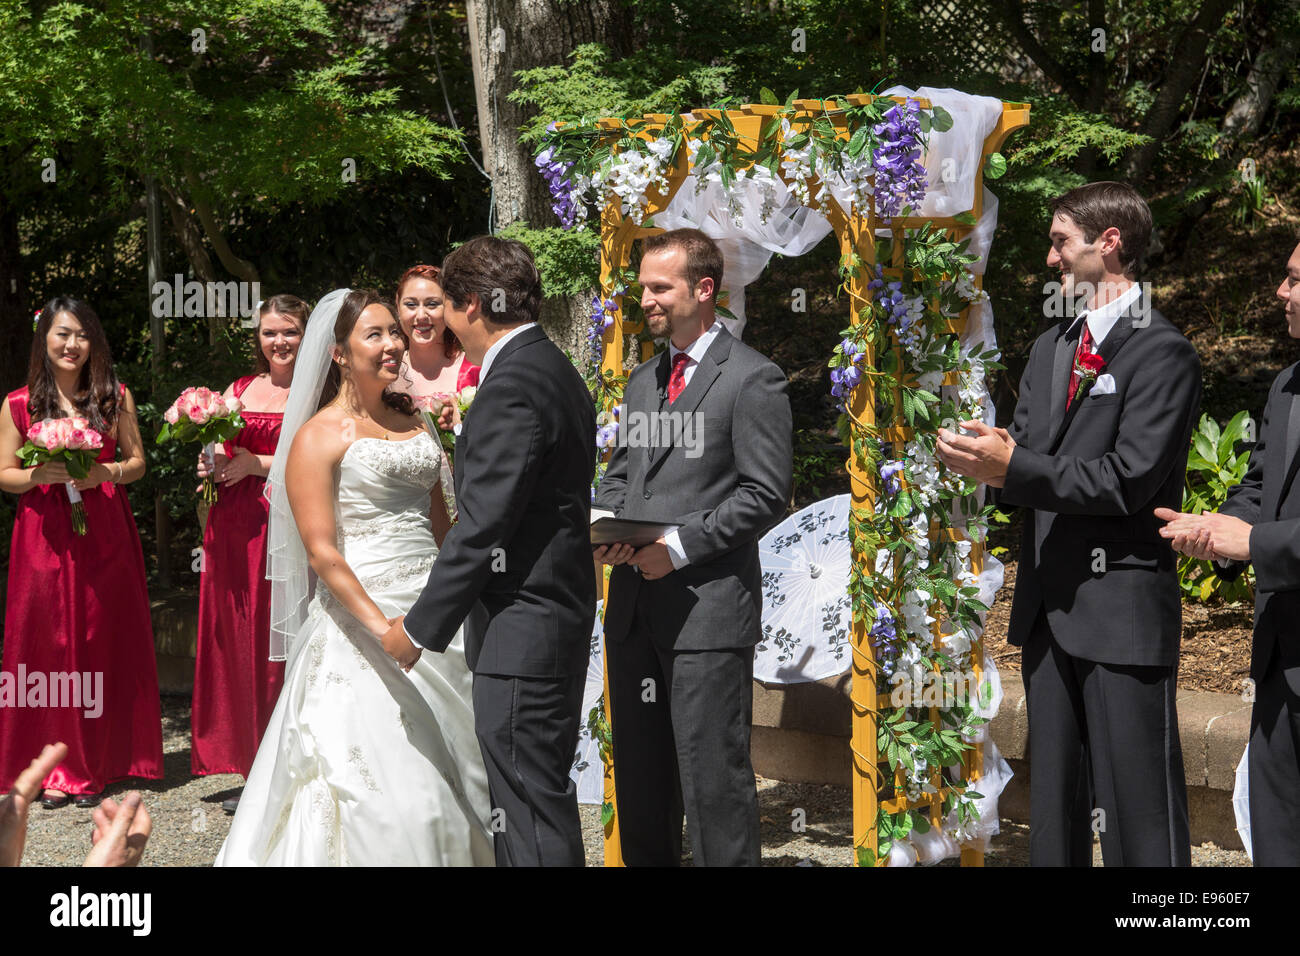 Civil wedding ceremony wedding wedding guests marin art and civil wedding ceremony wedding wedding guests marin art and garden center ross marin county california united states junglespirit Gallery